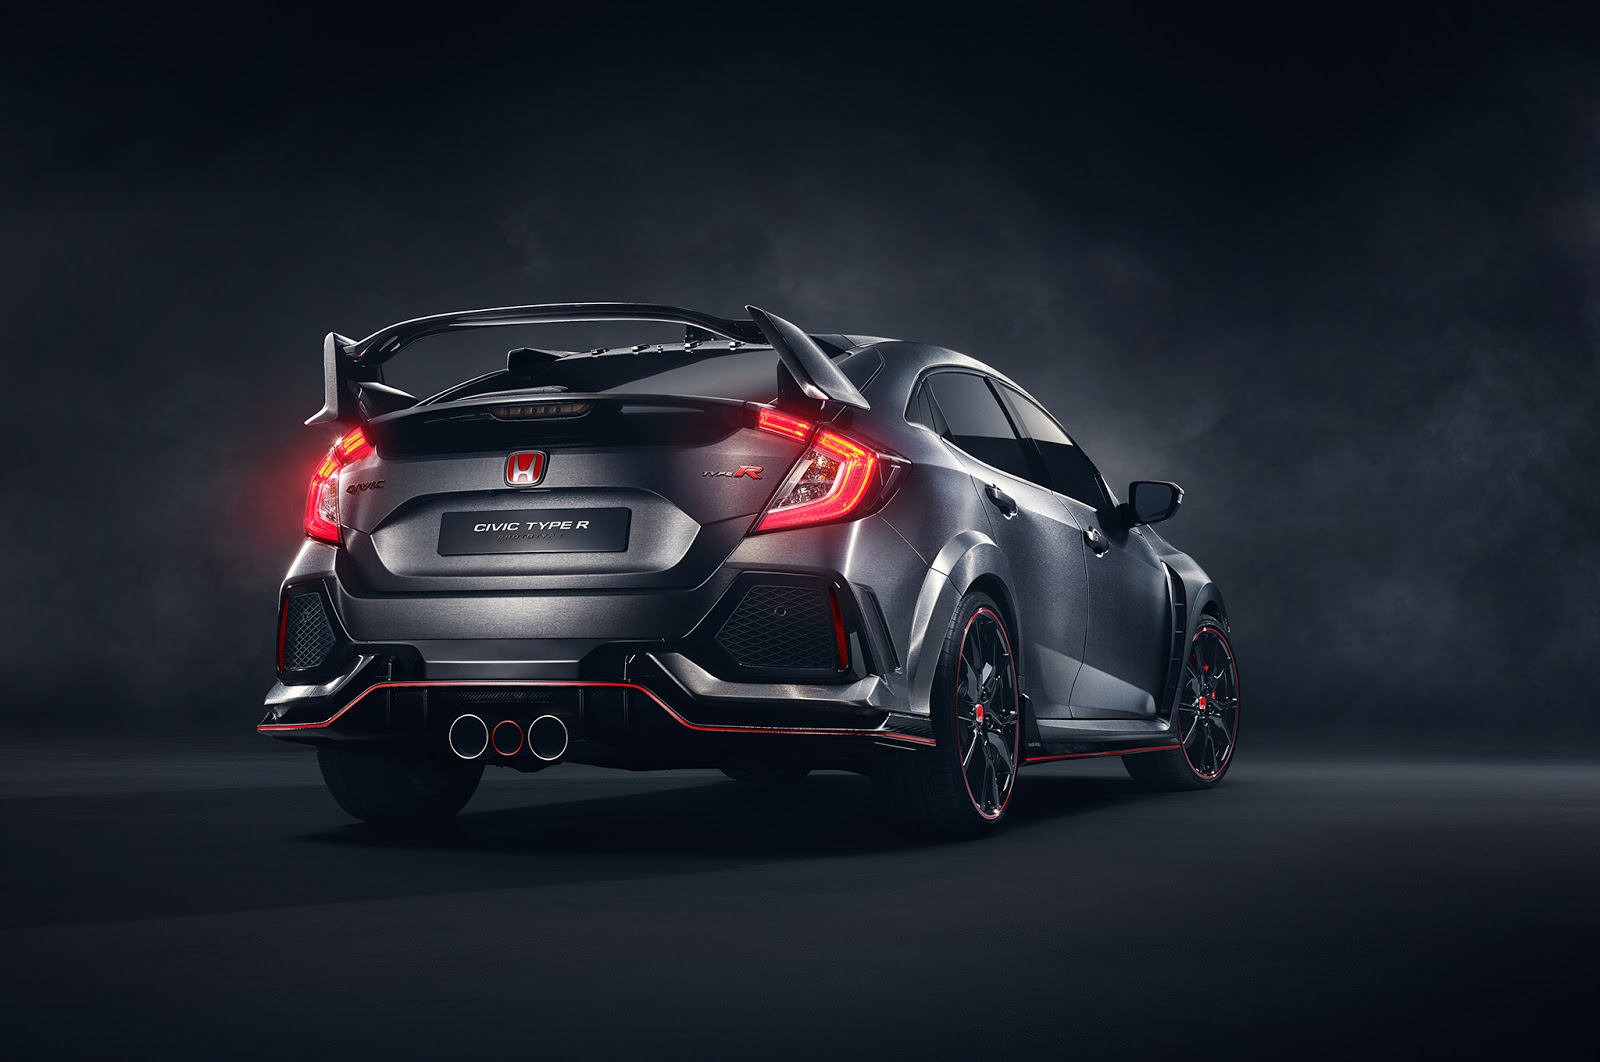 2018-Honda-Civic-Type-R-3.jpg